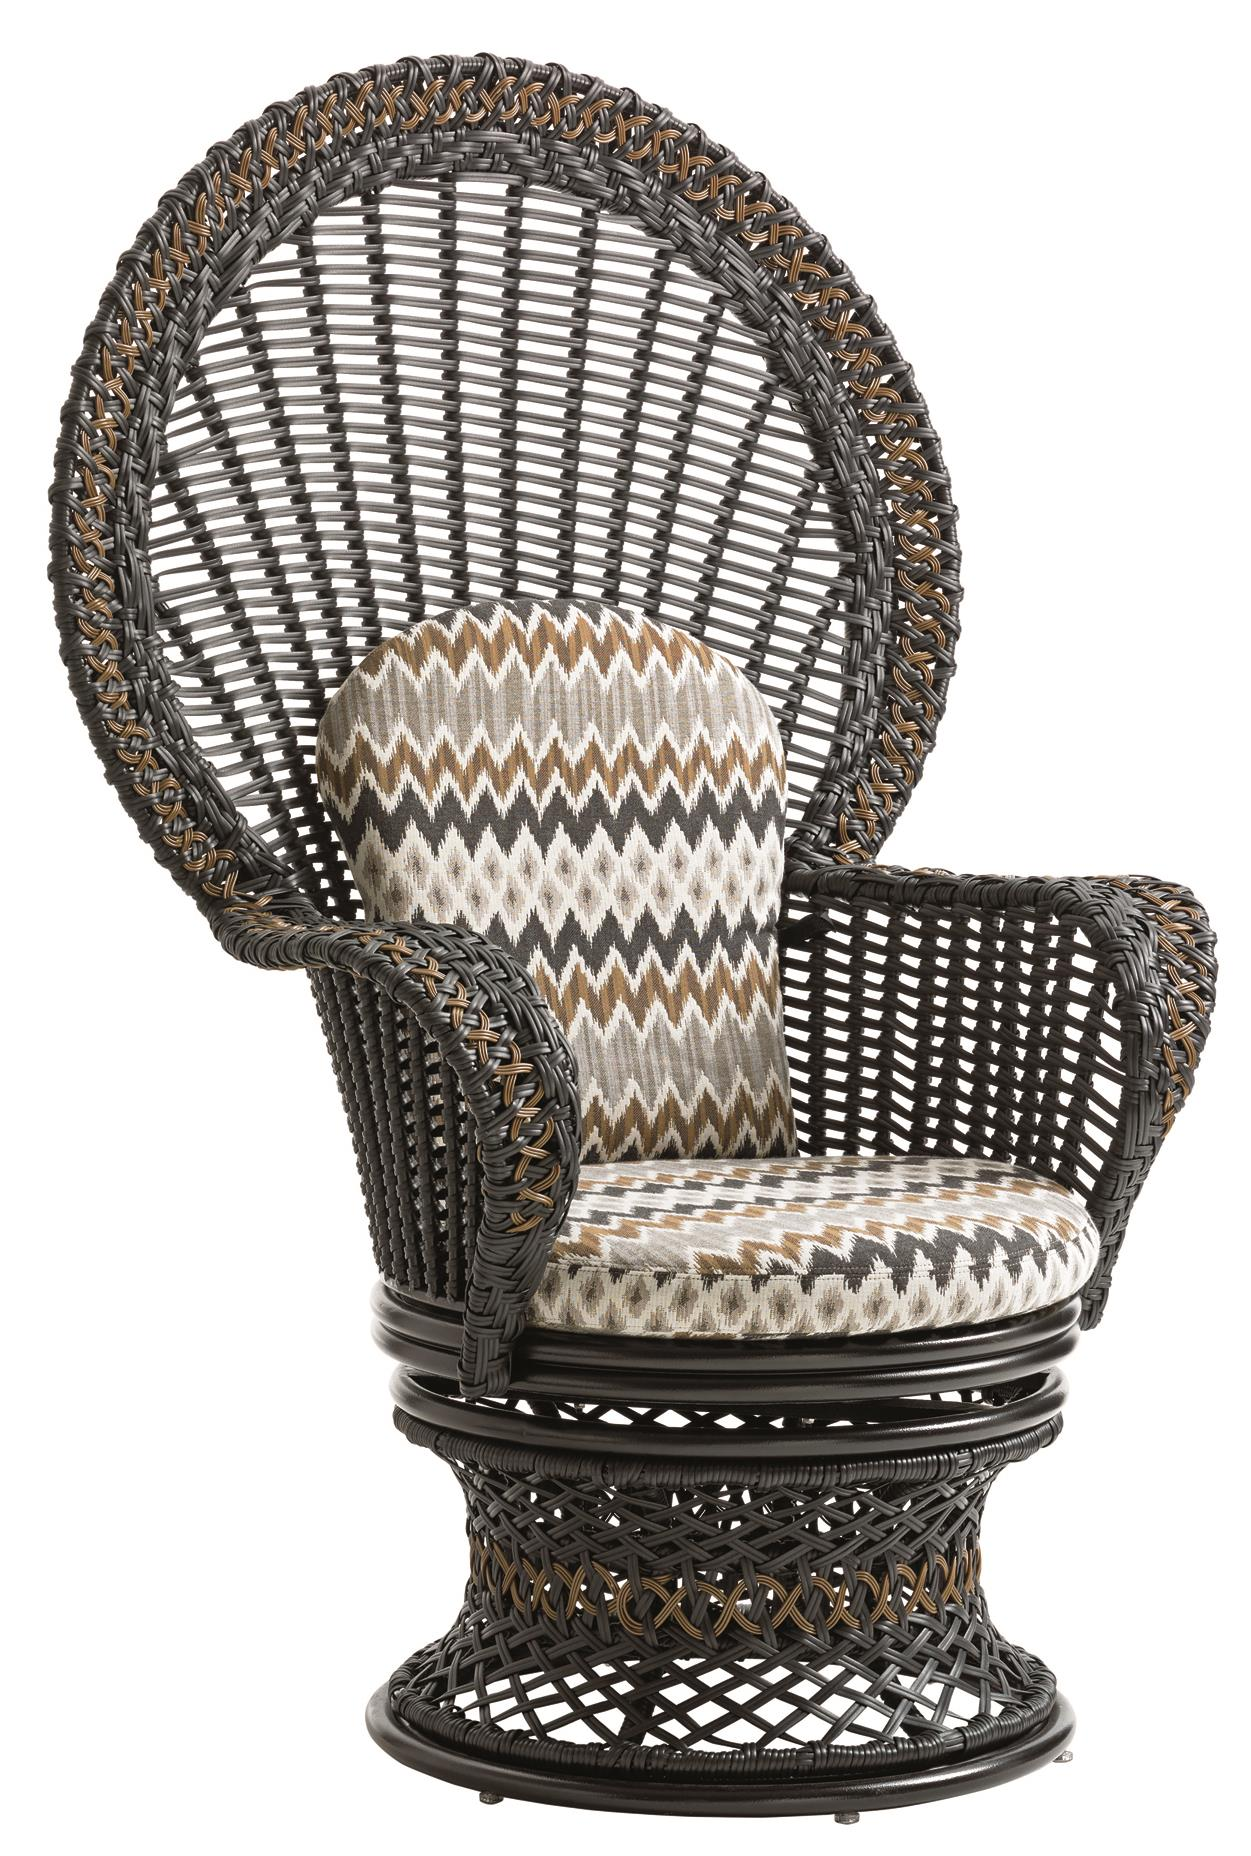 Tommy Bahama Outdoor Living Marimba Swivel Fan Chair - Item Number: 3237-10+CS3237-10-7685-71